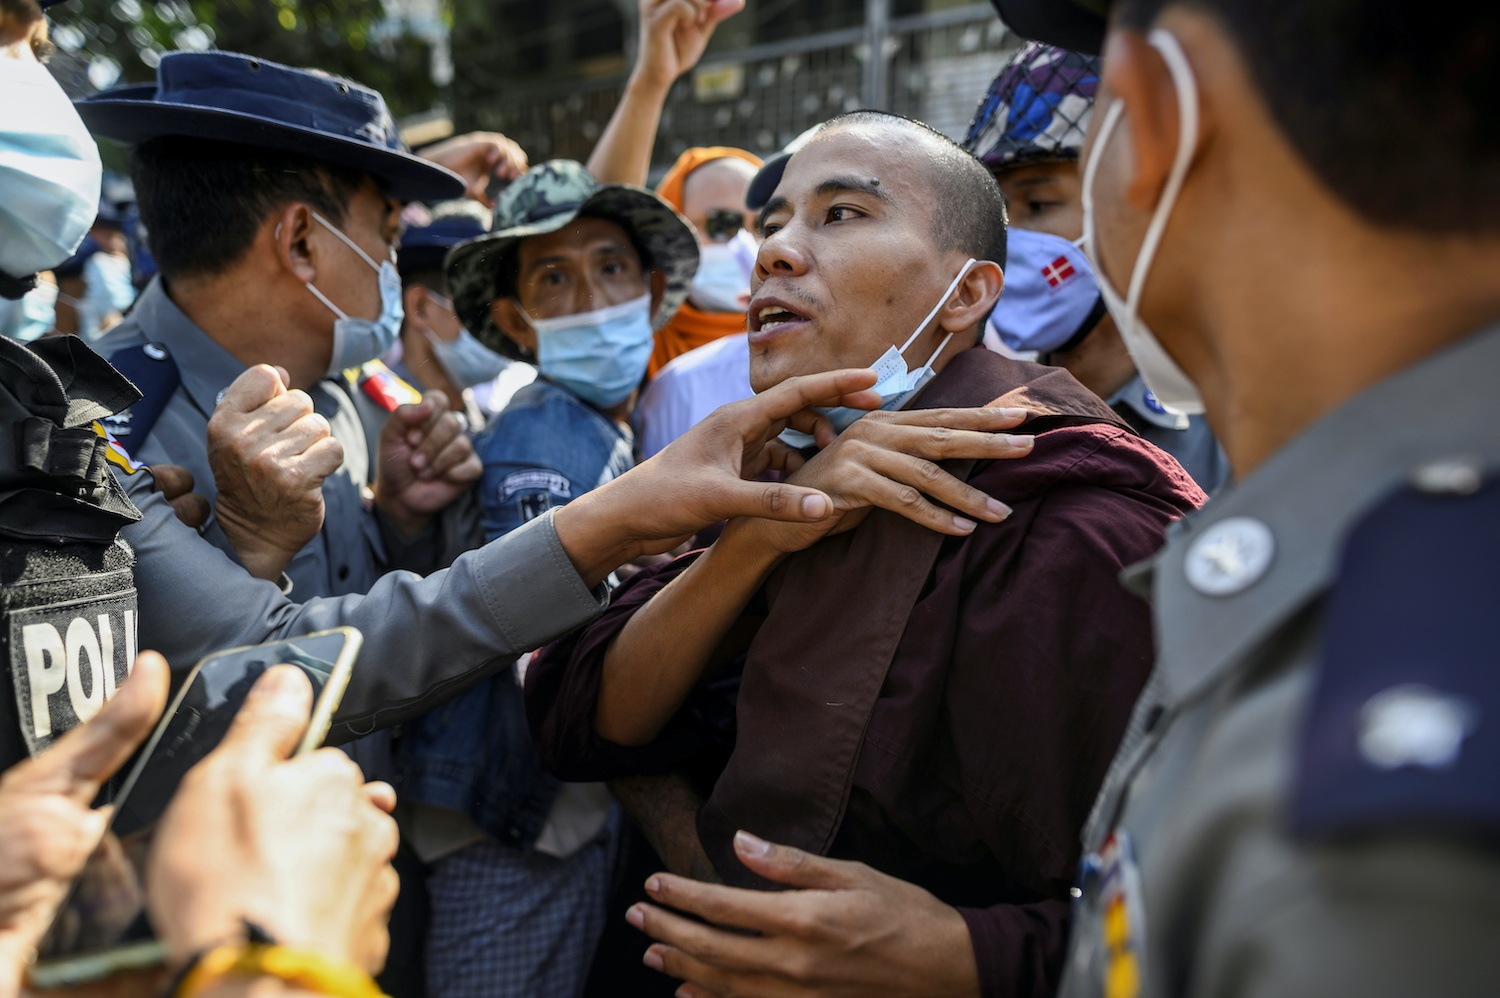 Police confront a monk taking part in a protest in support of the jailed nationalist monk Wirathu outside Insein prison in Yangon on Saturday. (Reuters Photo)